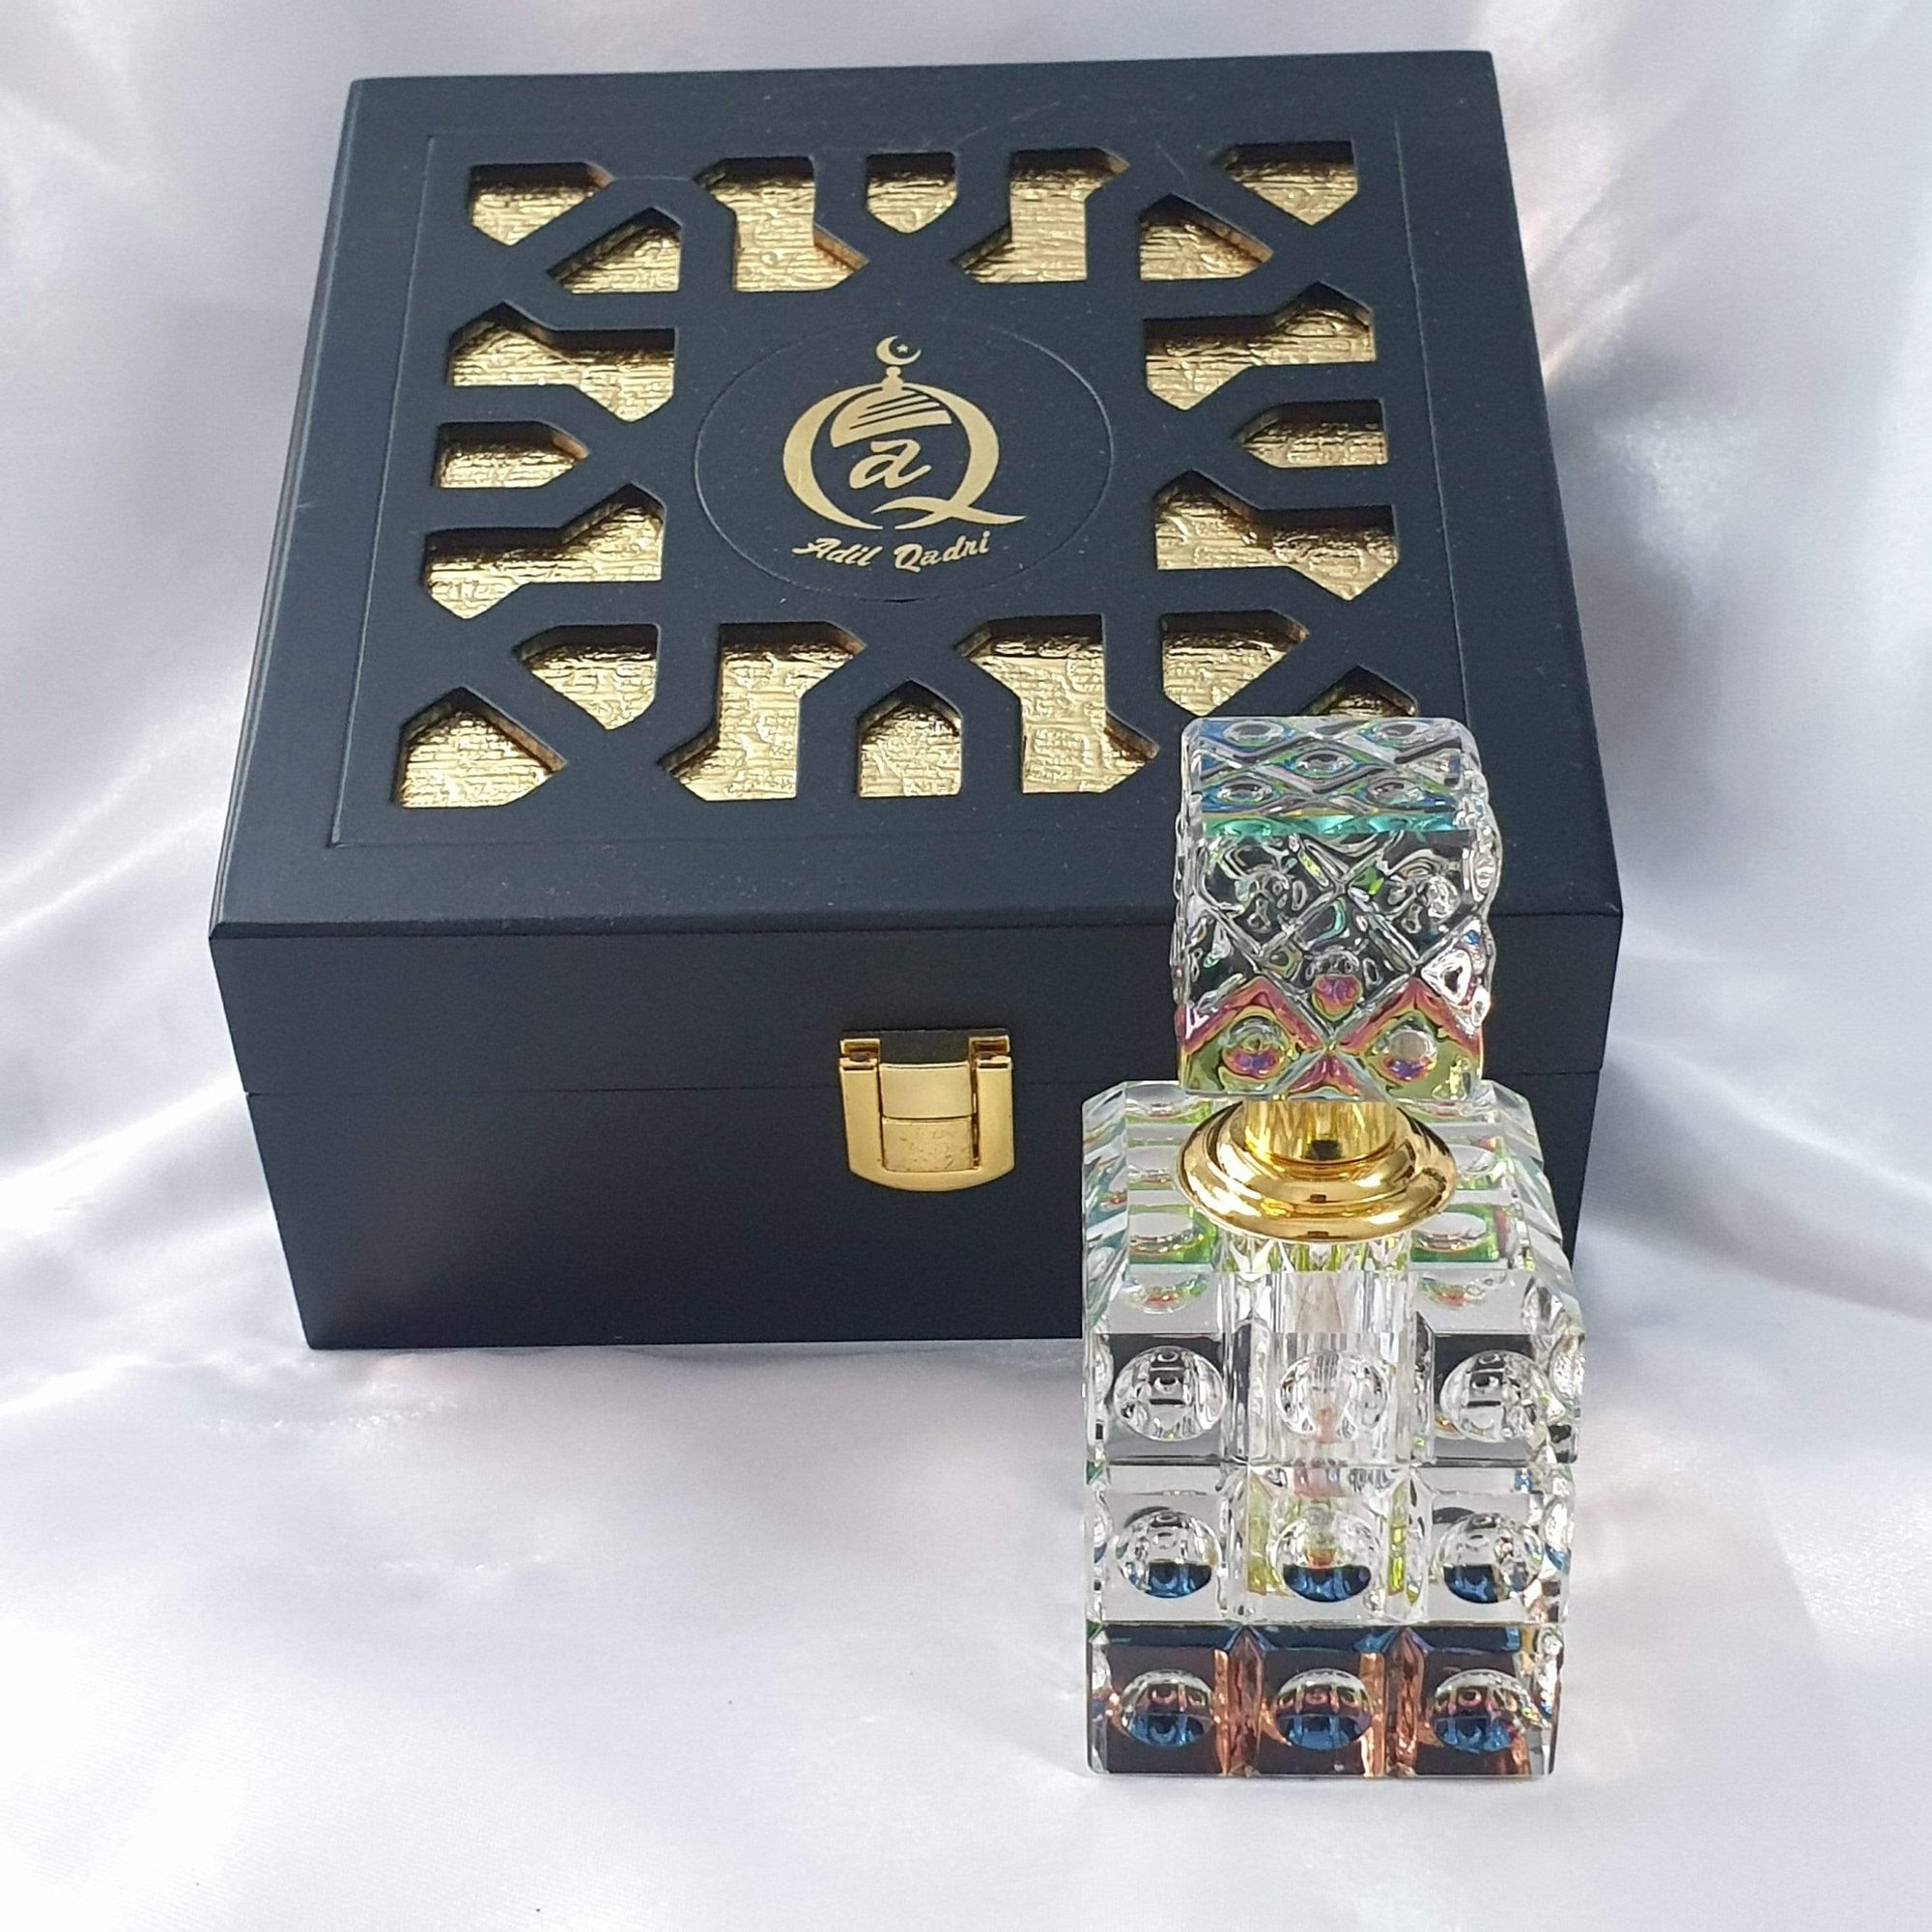 Adil Qadri EXCLUSIVE  Musk Abiyad ( White Musk )  Premium Quality PURE  Attar GIFT BOX With Antiqe Crystal Bottle